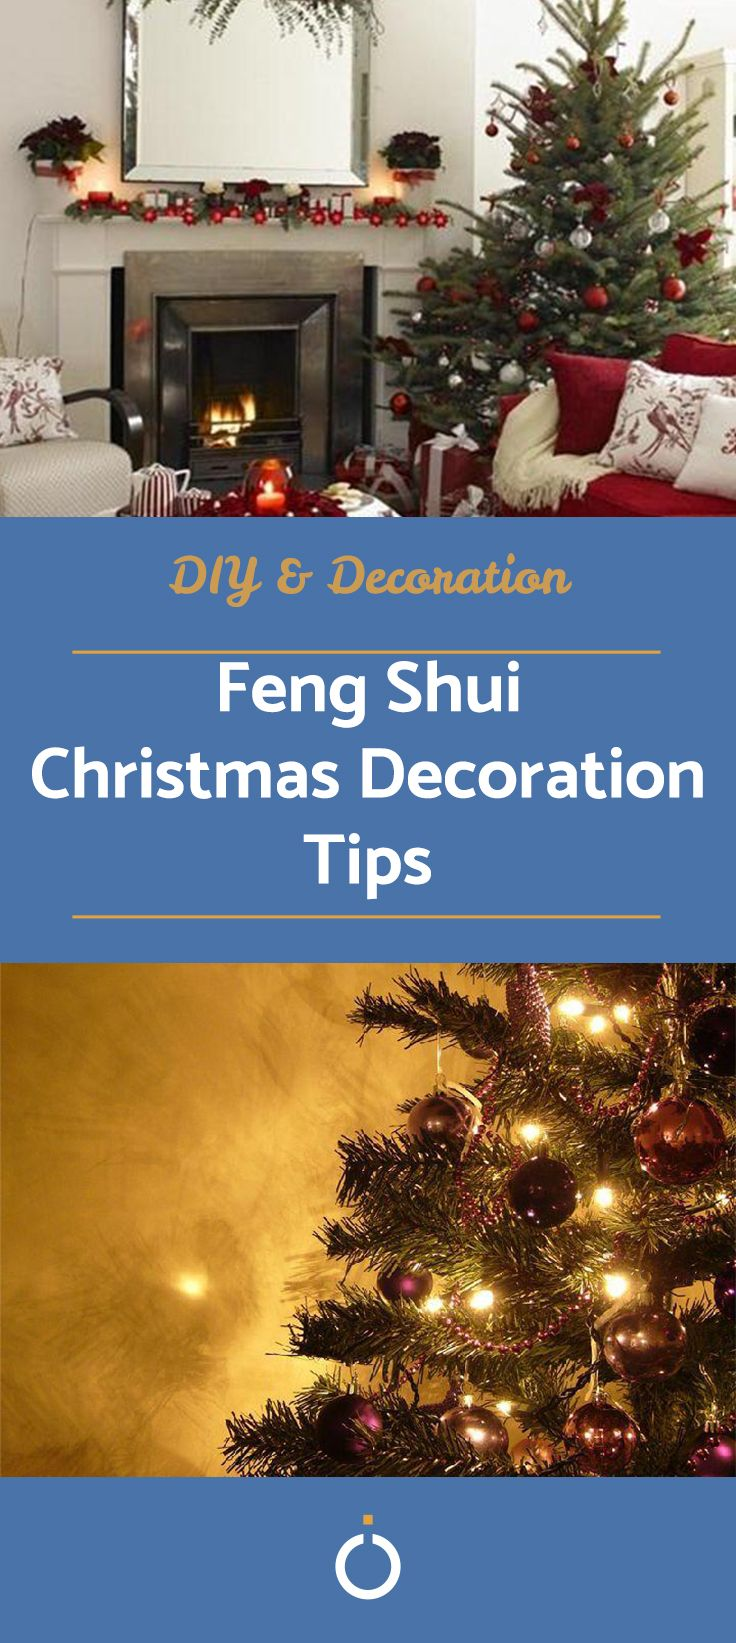 Feng Shui Christmas Tips Christmas Decor Diy Christmas Home Christmas Decorations